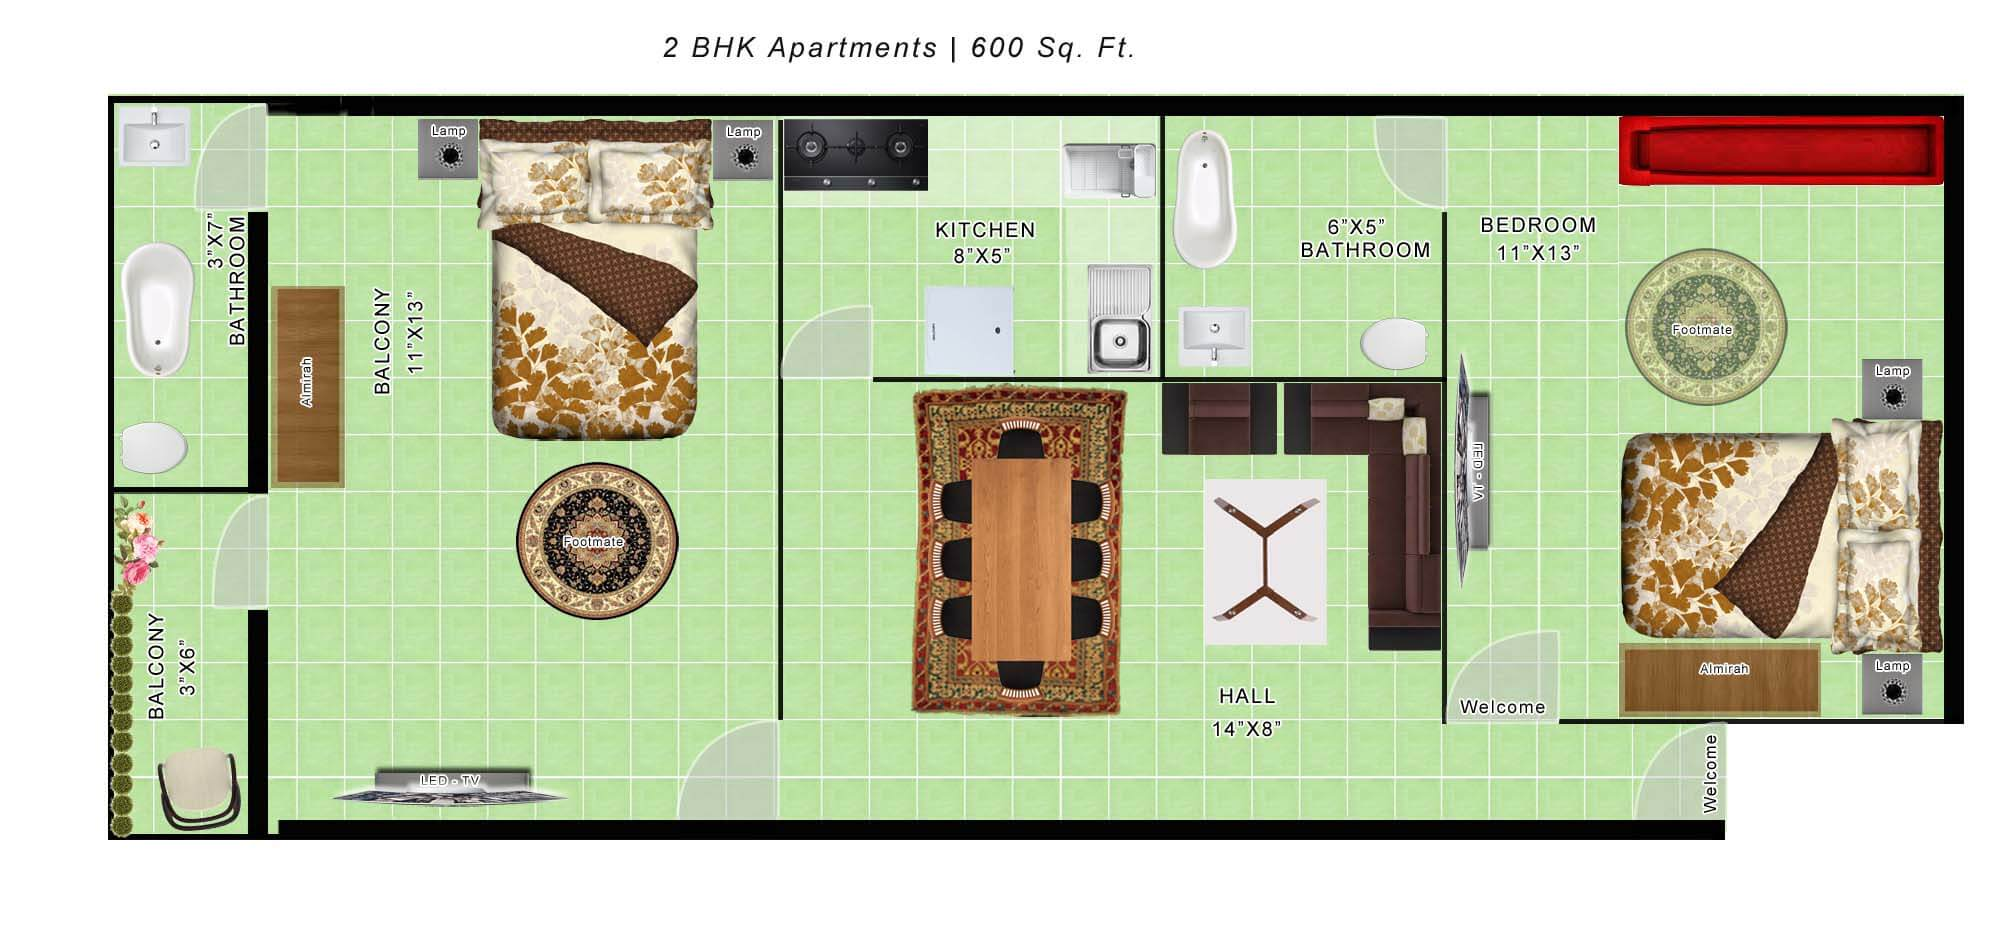 600 Sq Ft 2bhk Floor Plan Thefloors Co